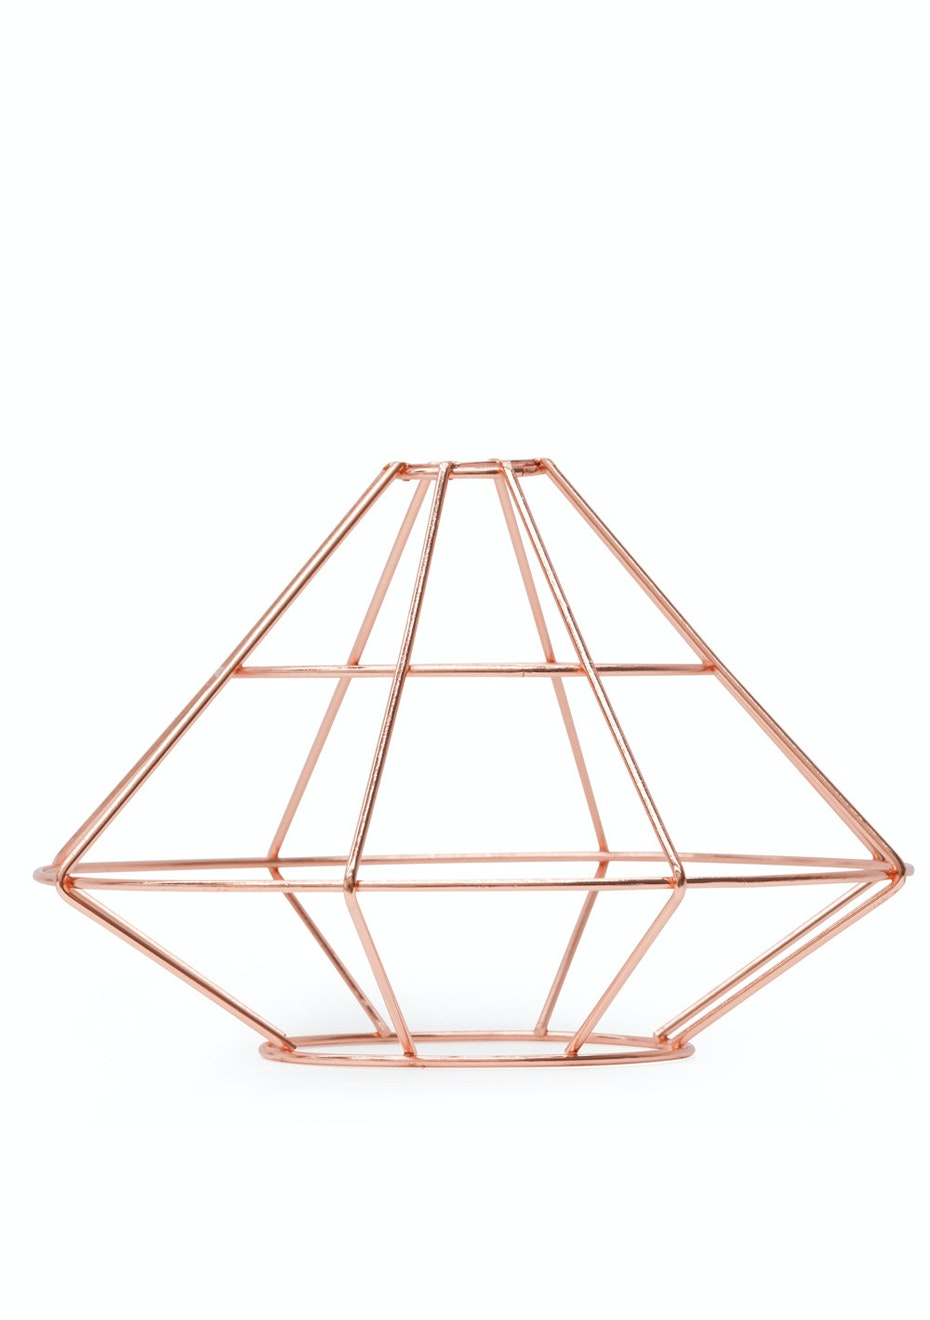 Me & My Trend - Copper Outline Shade